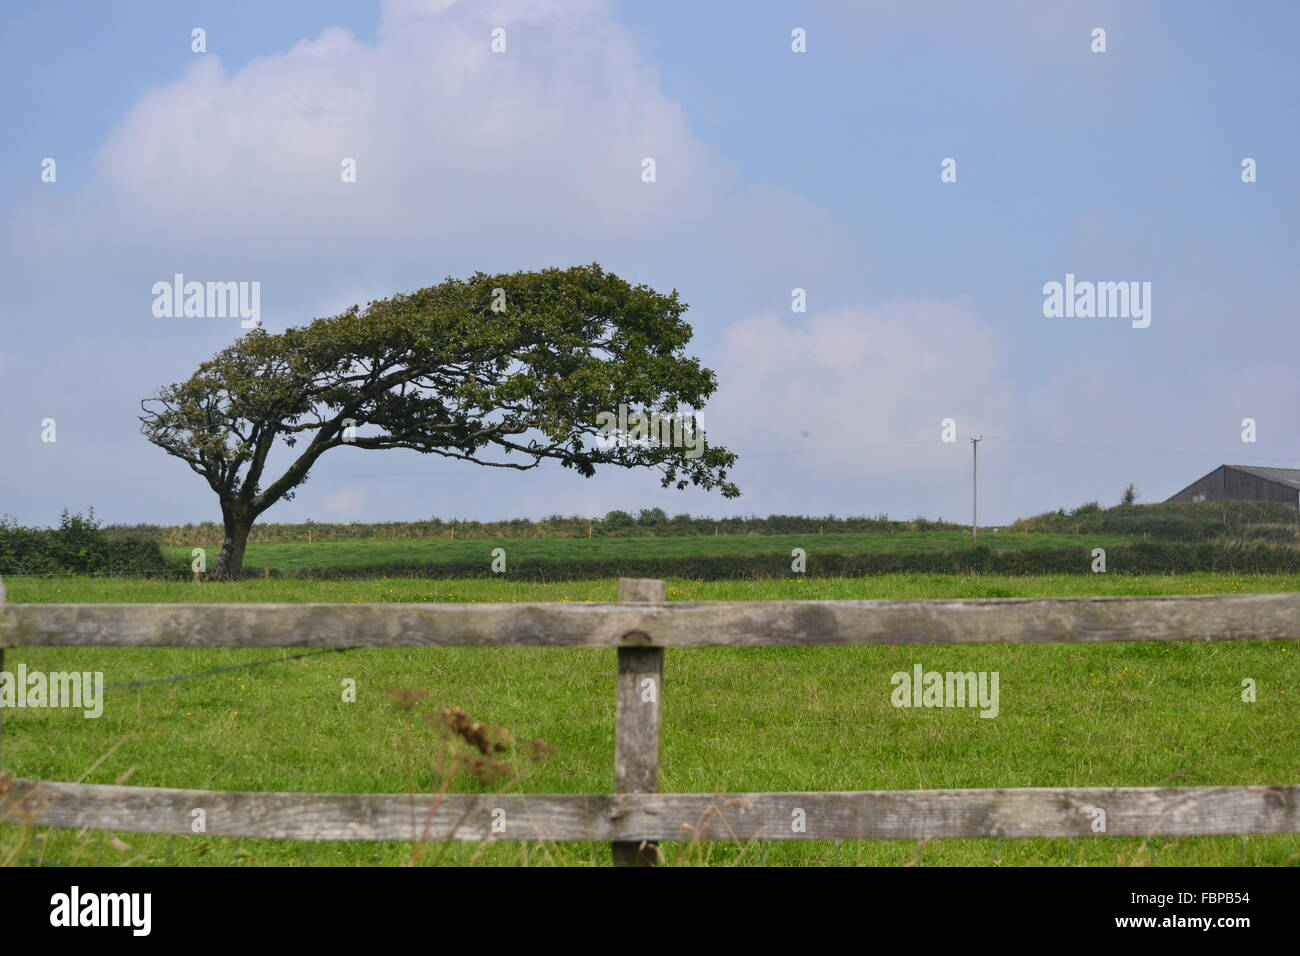 Tree warped by the wind - Stock Image